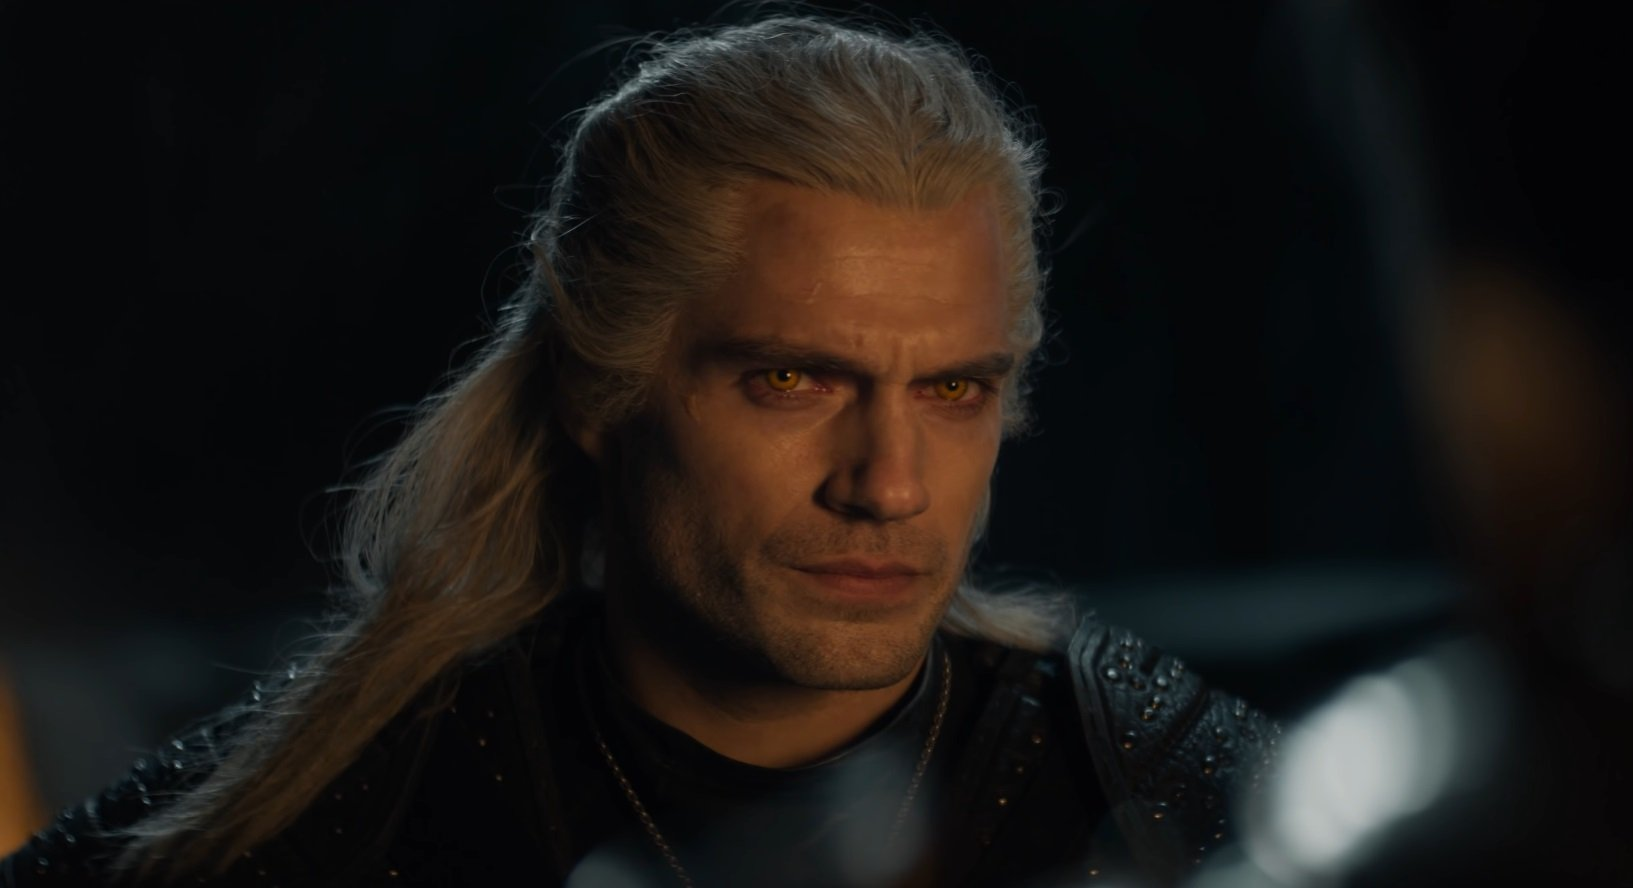 Season 2 of Netflix's The Witcher confirmed